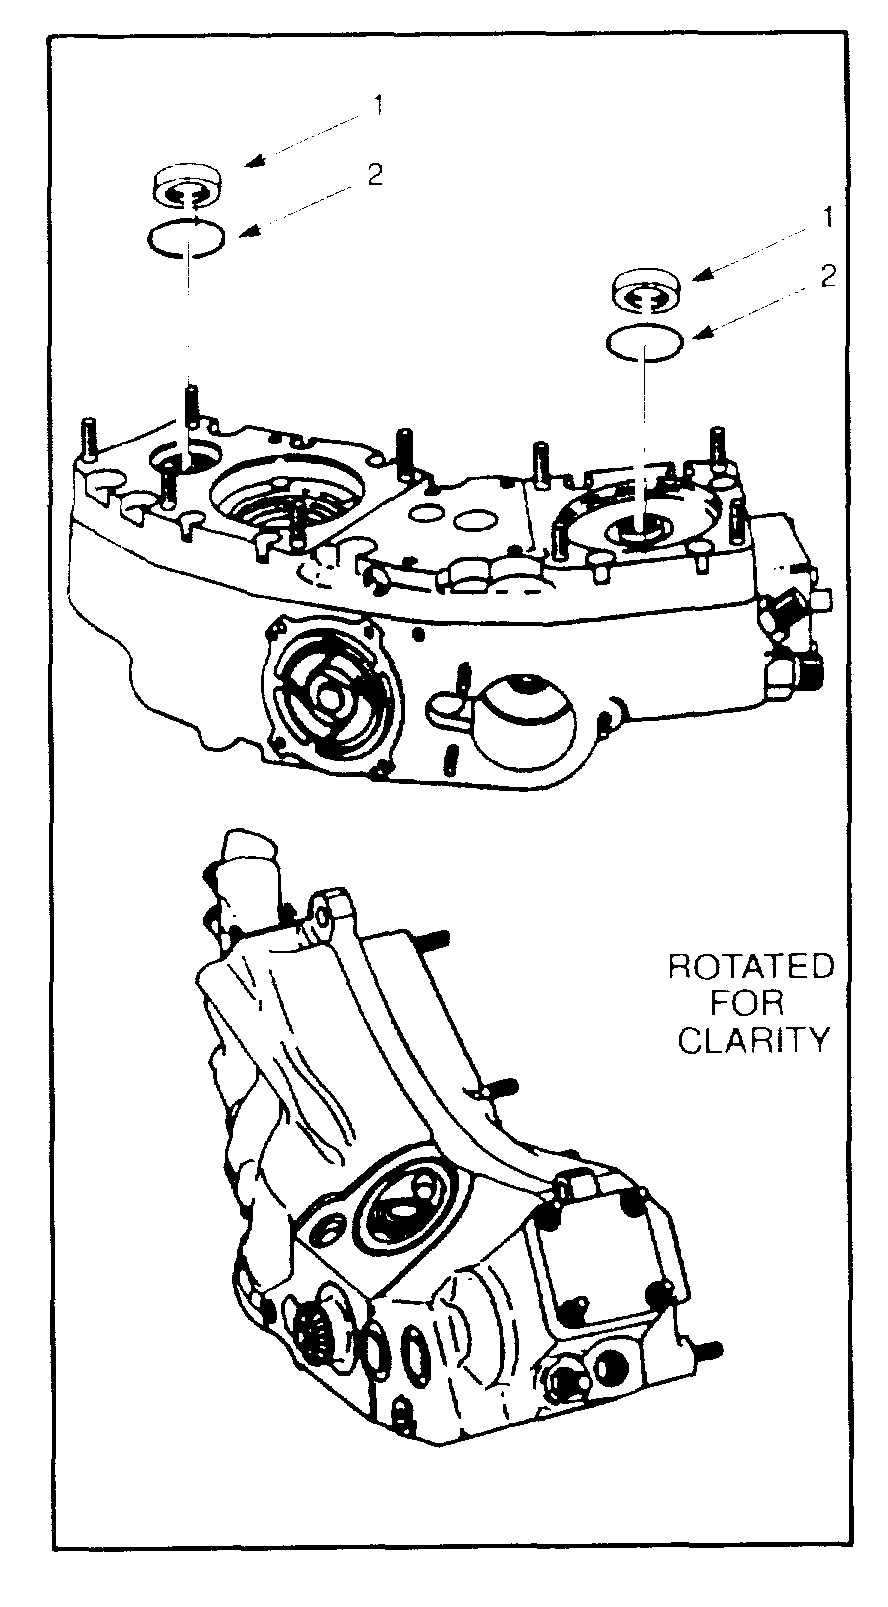 INSTALL SEAL ASSEMBLY